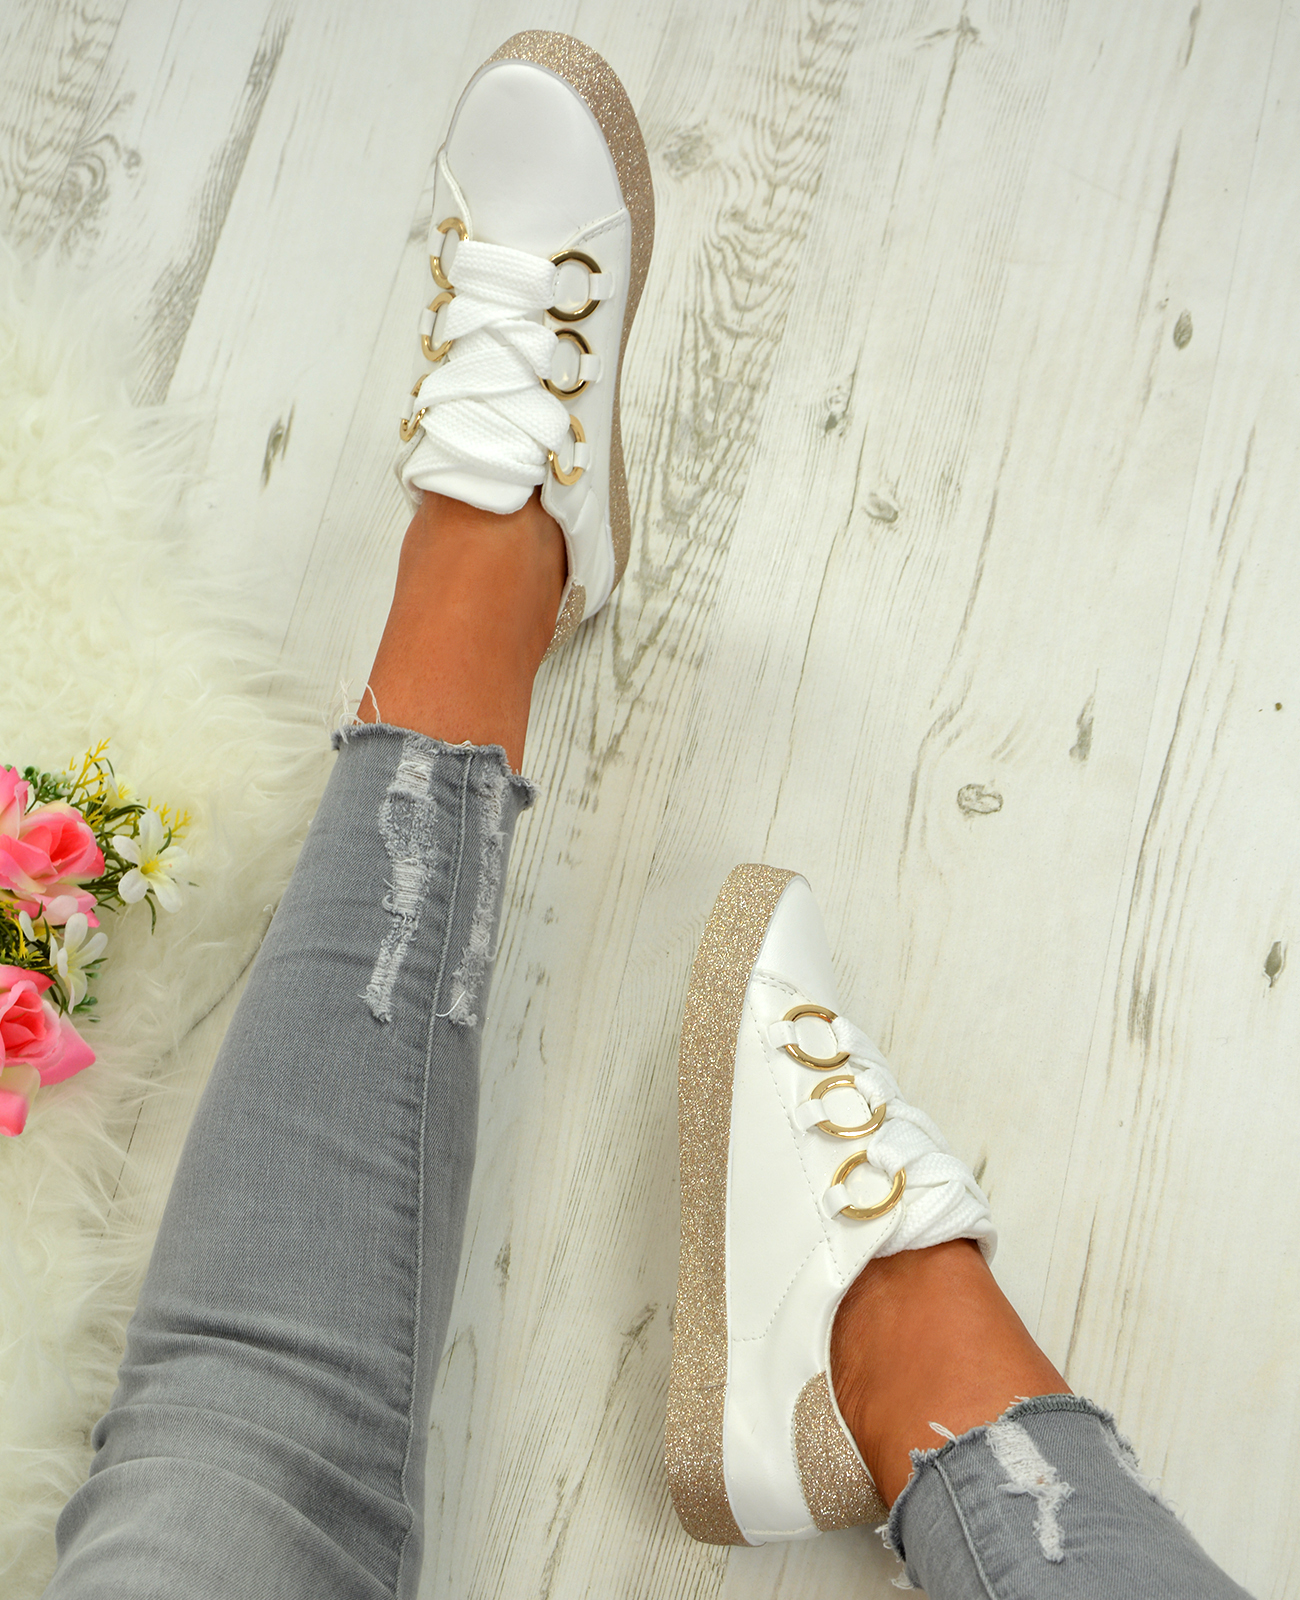 LADIES-WOMENS-GLITTER-SNEAKERS-SPARKLE-TRAINERS-LACE-UP-PLIMSOLL-PUMPS-SHOES thumbnail 20